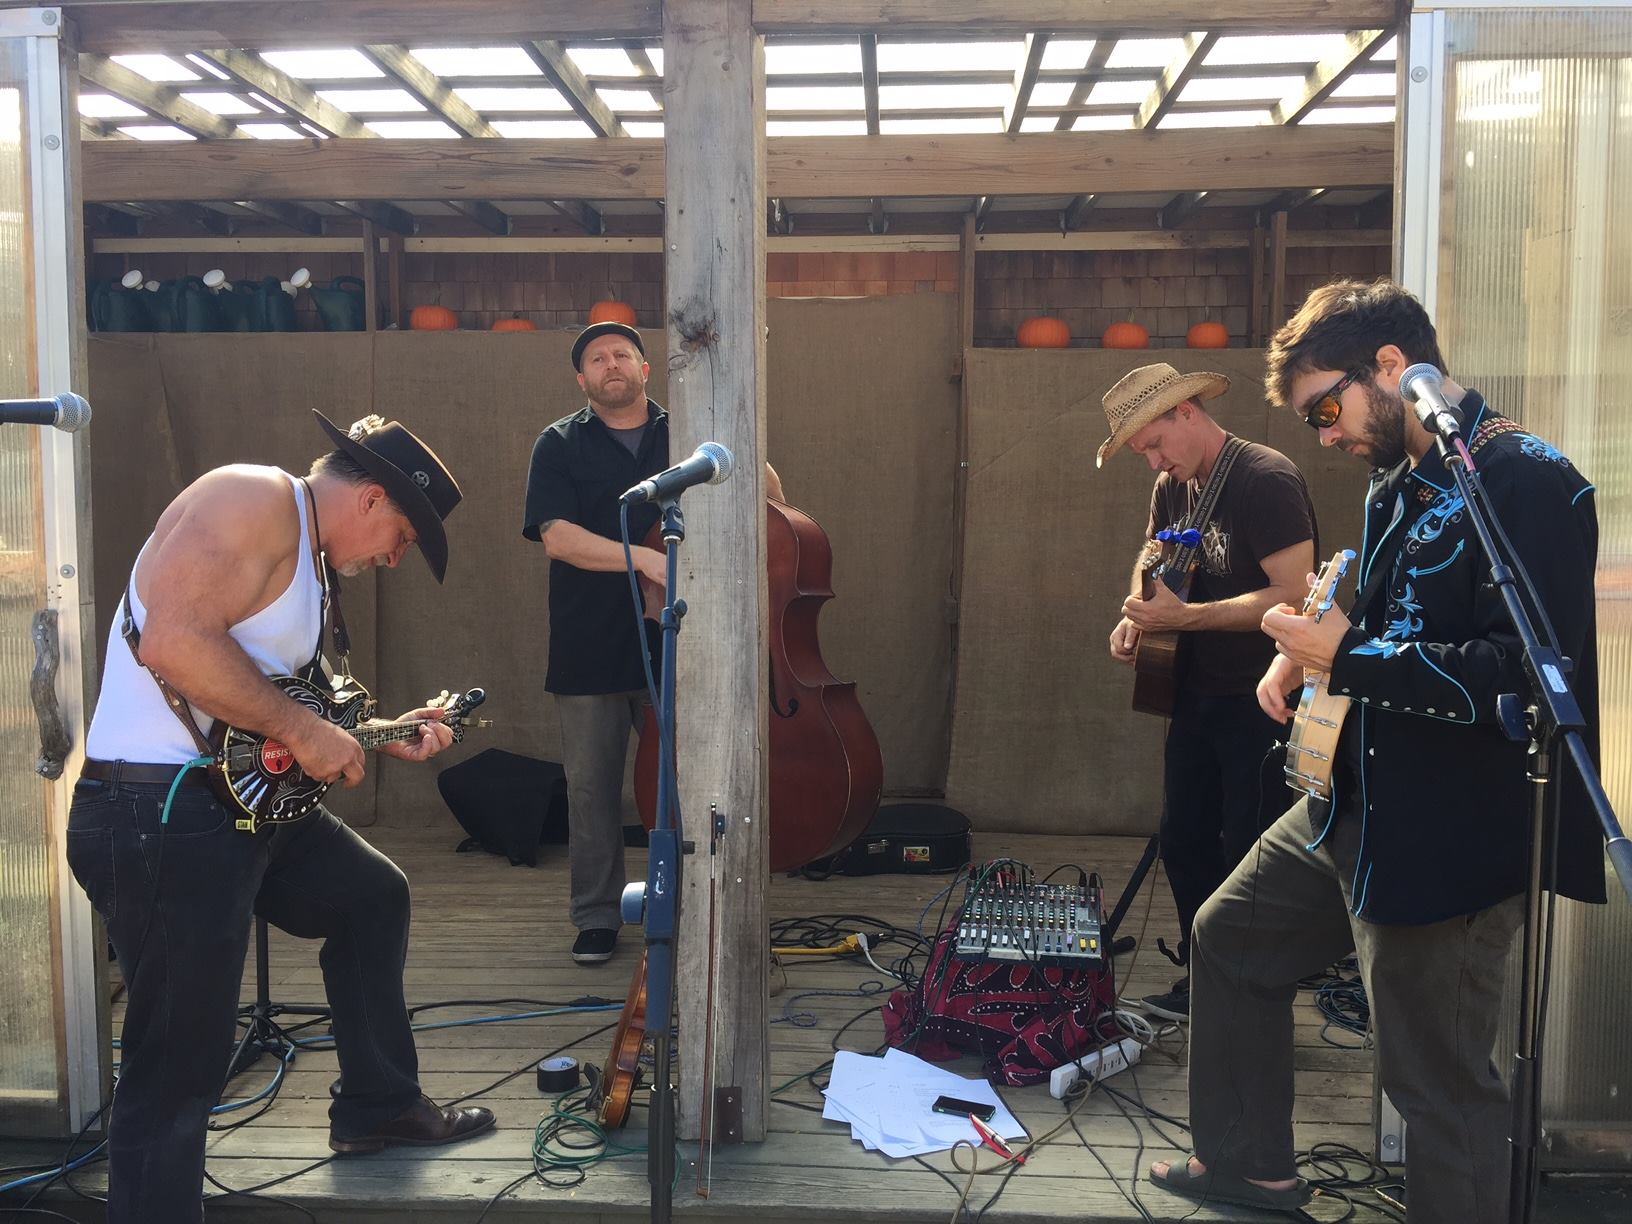 LIVE MUSIC - LIVE MUSIC WITH THE PICKPOCKET BLUEGRASS BAND